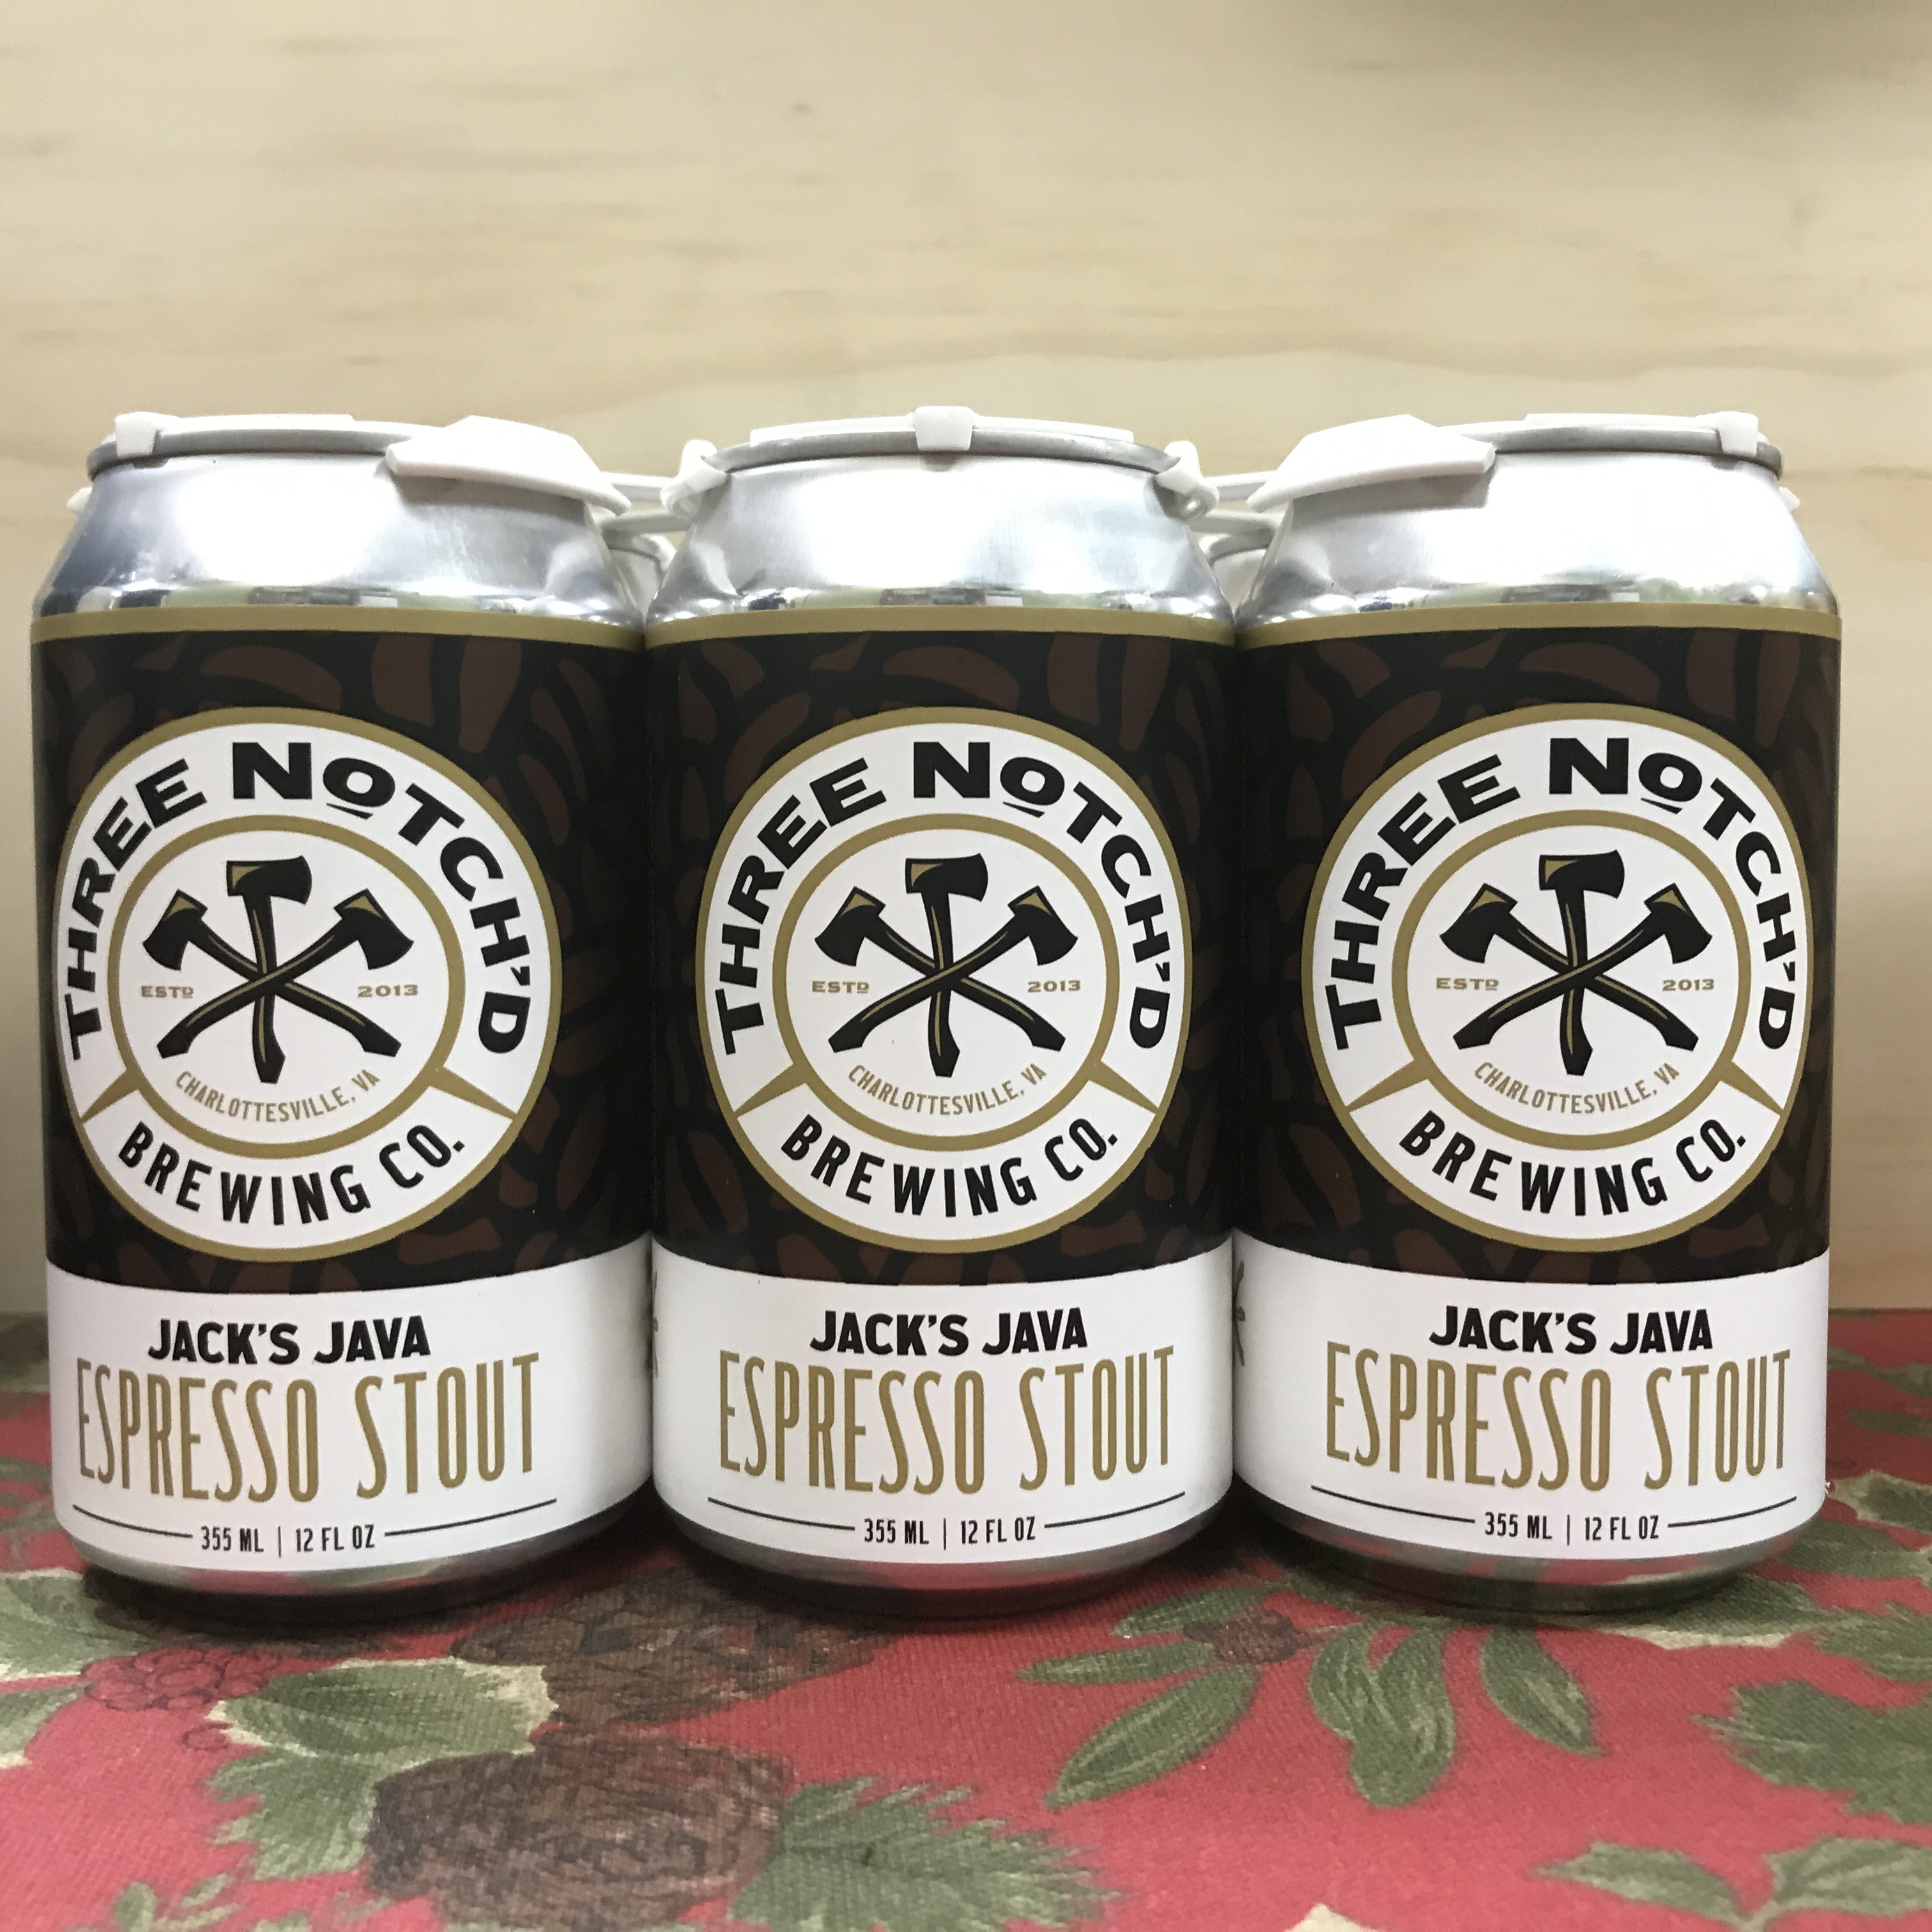 Three Notch'd Jack's Java Espresso Stout 6 x 12 oz cans